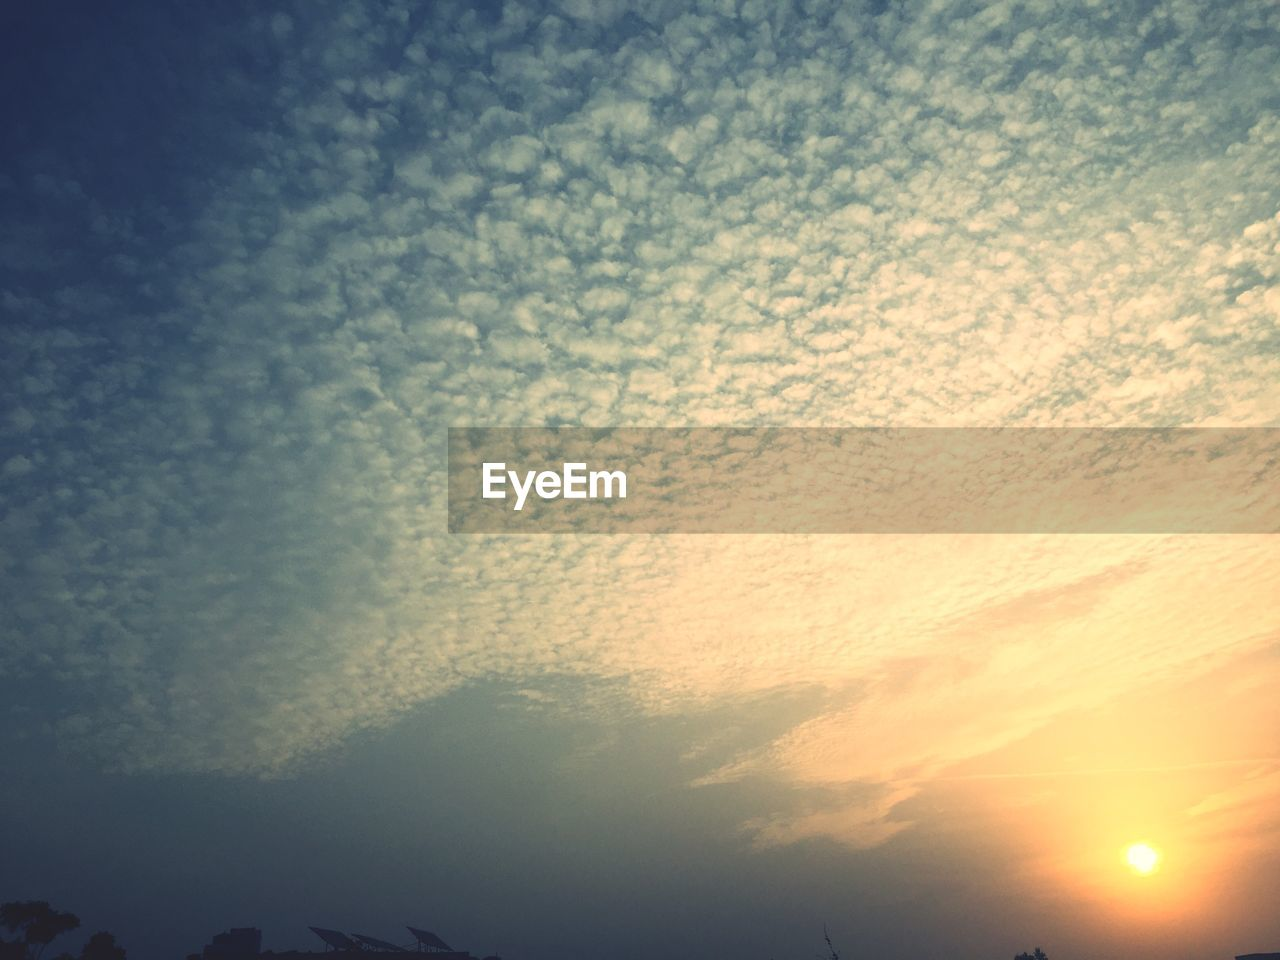 sky, cloud - sky, beauty in nature, low angle view, nature, no people, tranquility, scenics - nature, sunset, sunlight, tranquil scene, outdoors, backgrounds, day, idyllic, sun, full frame, orange color, silhouette, meteorology